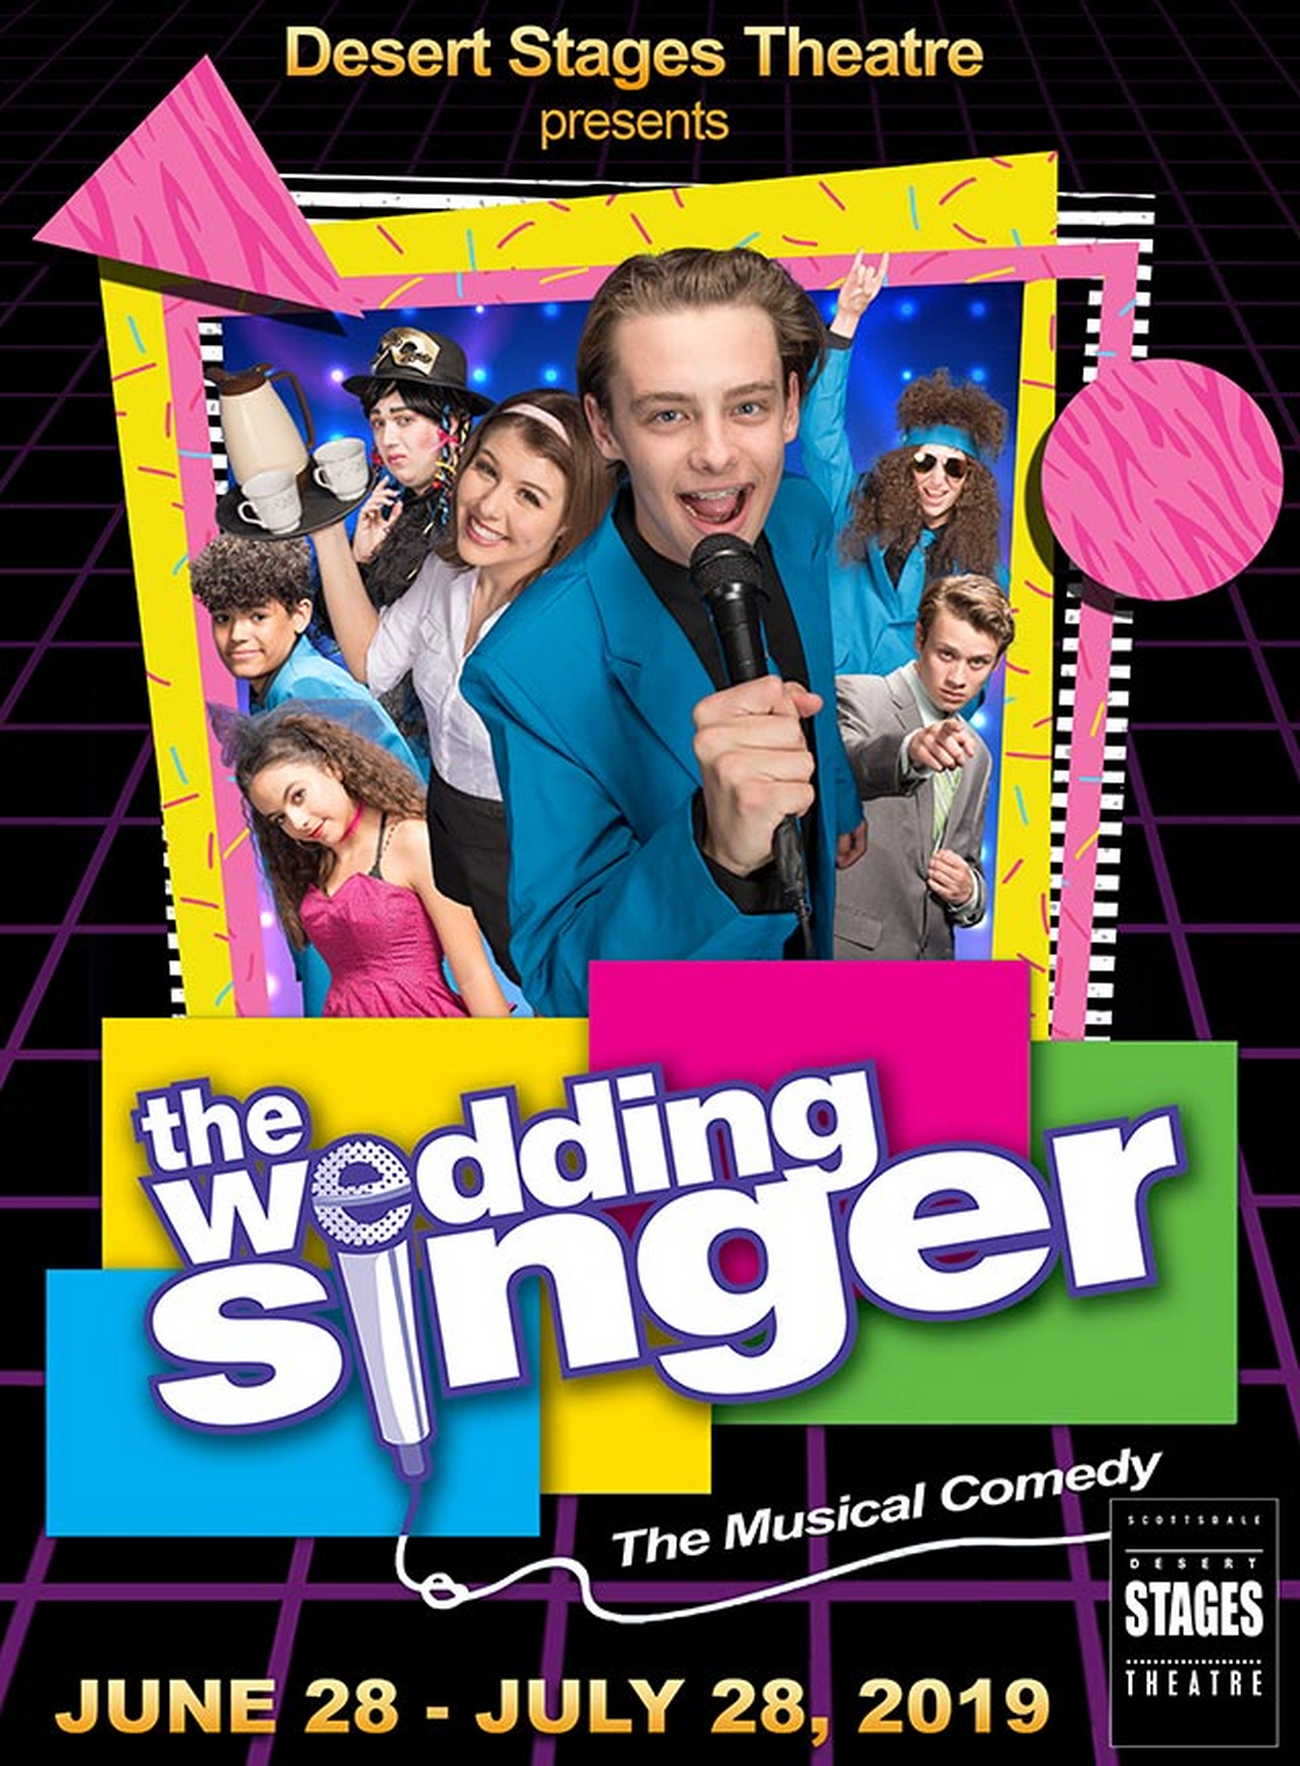 BWW Review: THE WEDDING SINGER at DESERT STAGES THEATRE Parties Like It's 1986